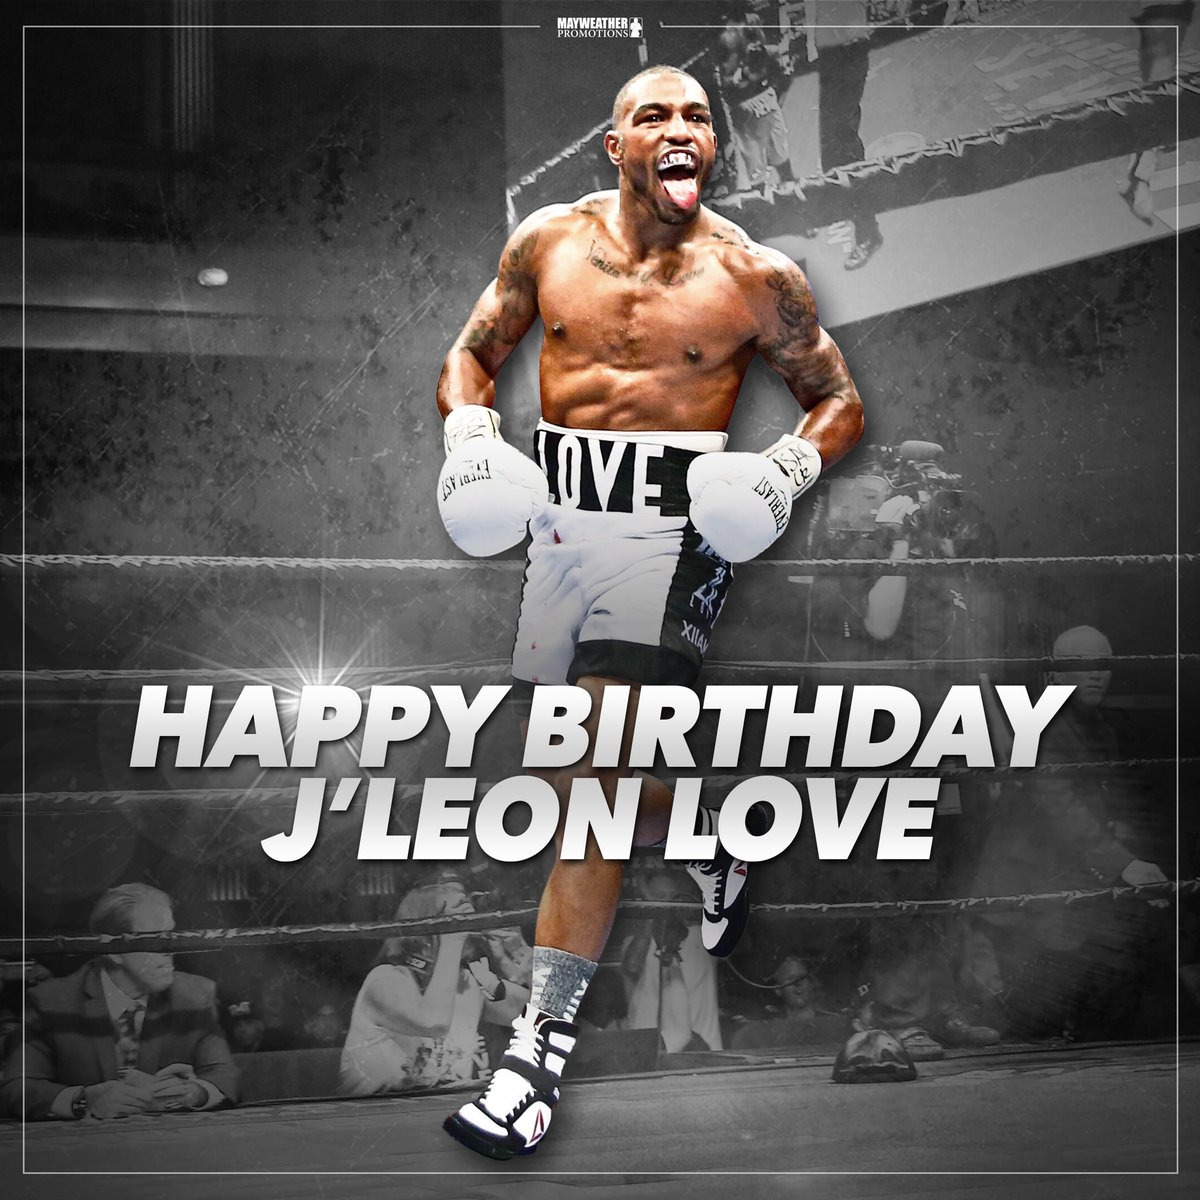 test Twitter Media - Happy Bday champ! Let's wish @JLeonLove a very Happy 30th Birthday today! Follow him & show him some love! 🎂🎉 https://t.co/MDtI6hXNsq